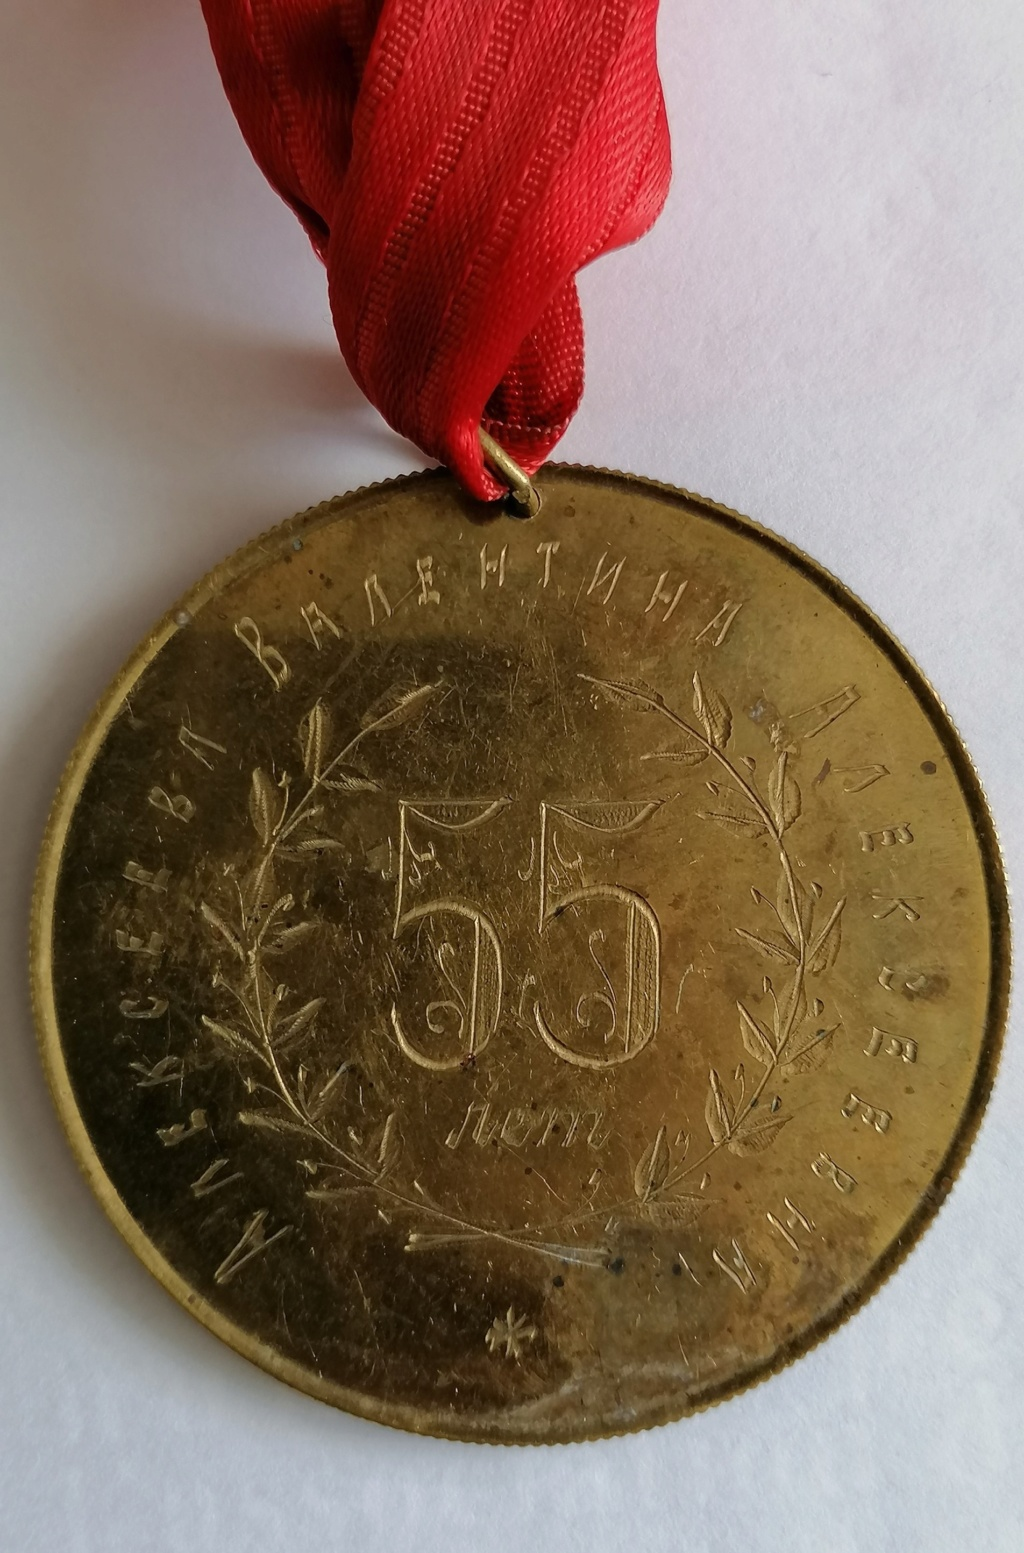 MEDAILLE RUSSE INCONNU Img_2013